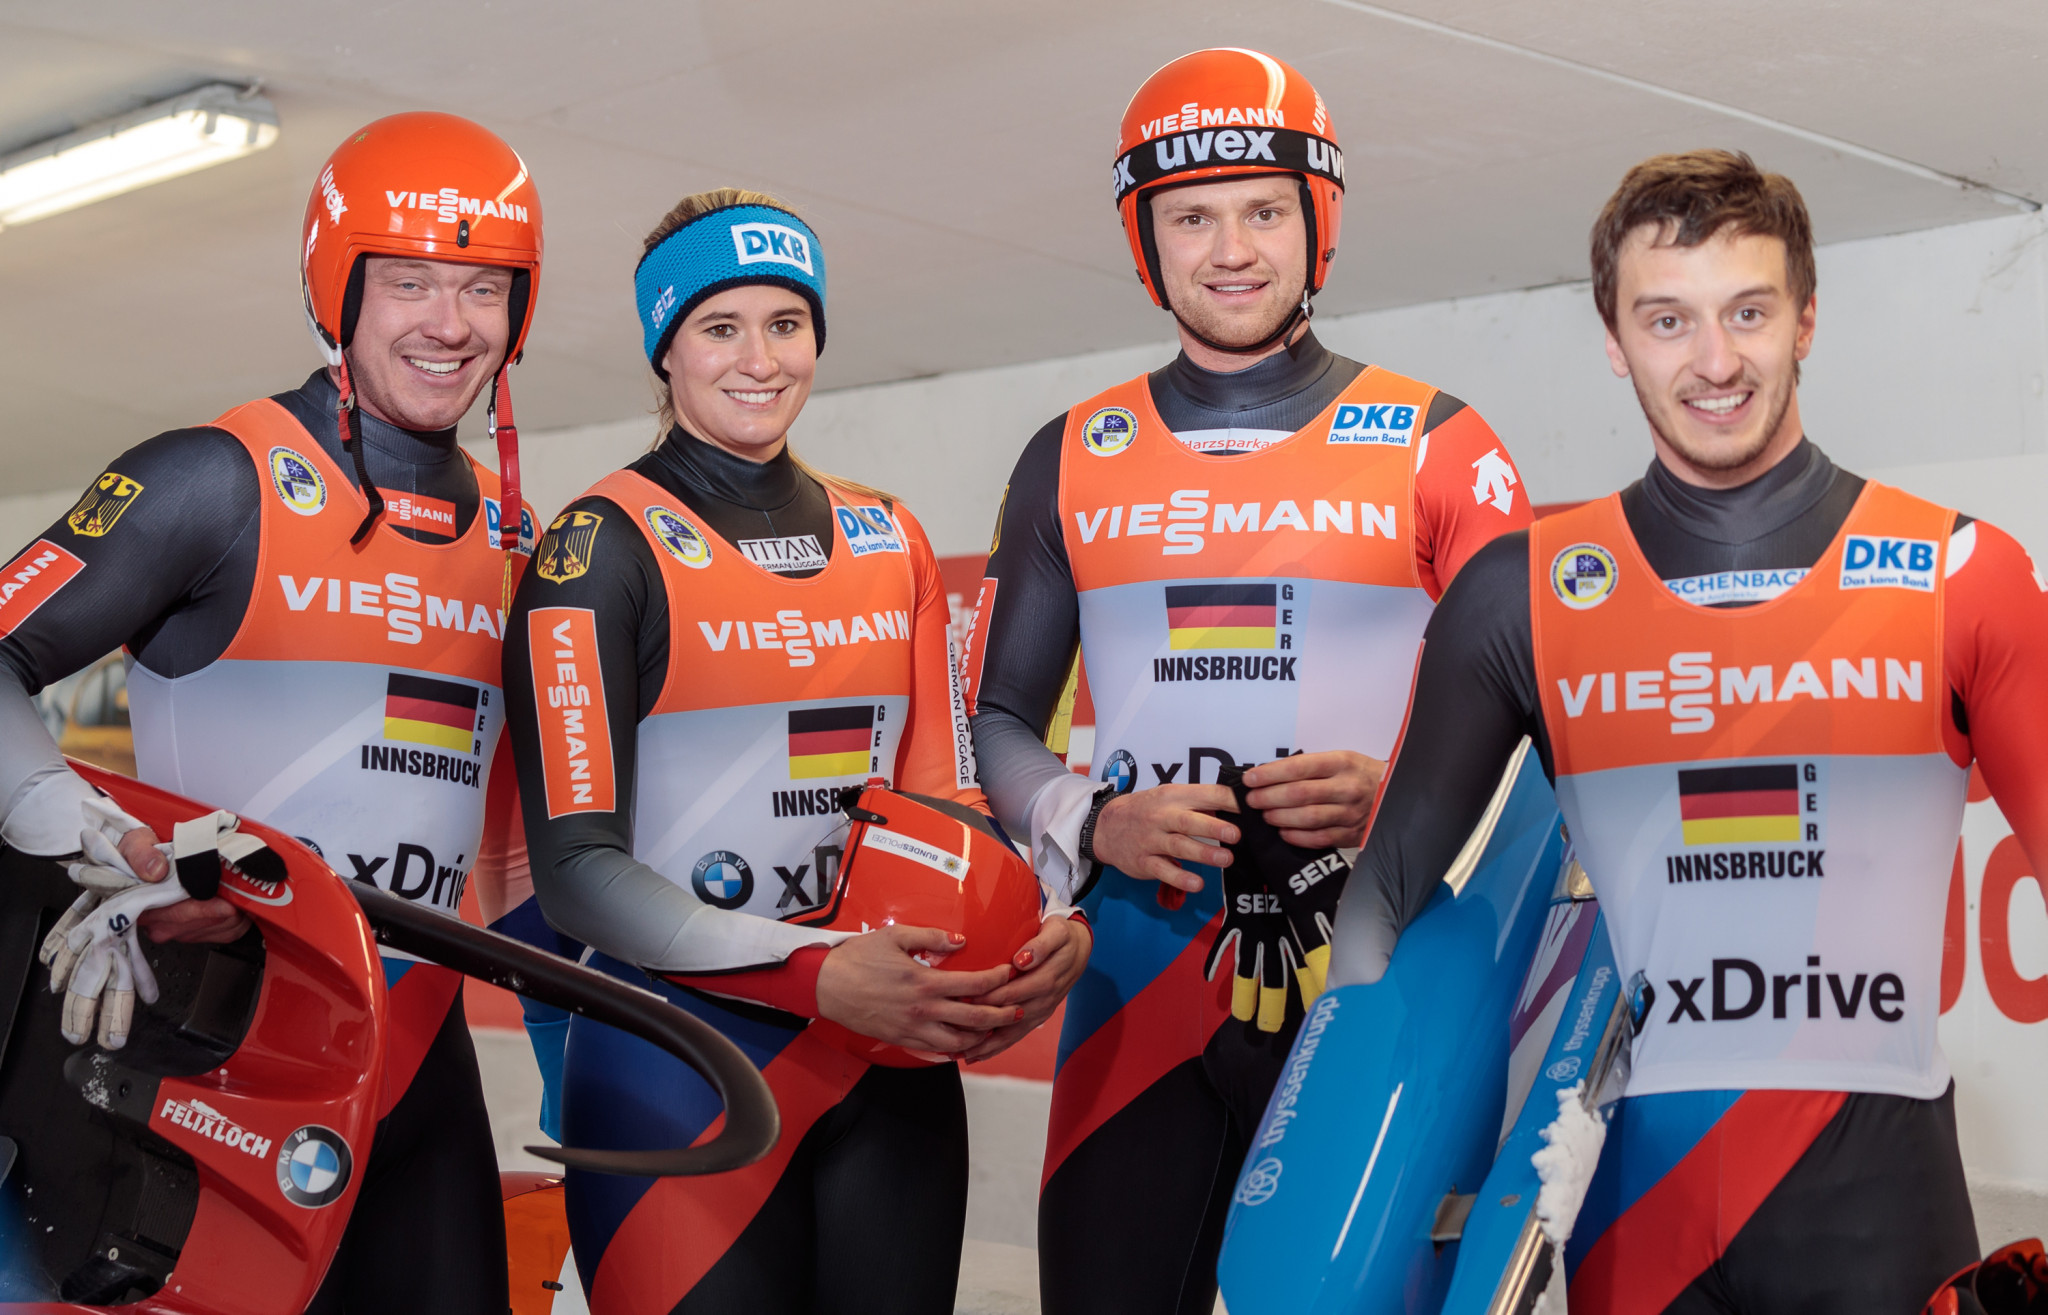 Germany will be hoping Felix Loch, Natalie Geisenberger, Toni Eggert and Sascha Benecken can bring them glory in the second Luge World Cup relay event of the year ©Getty Images